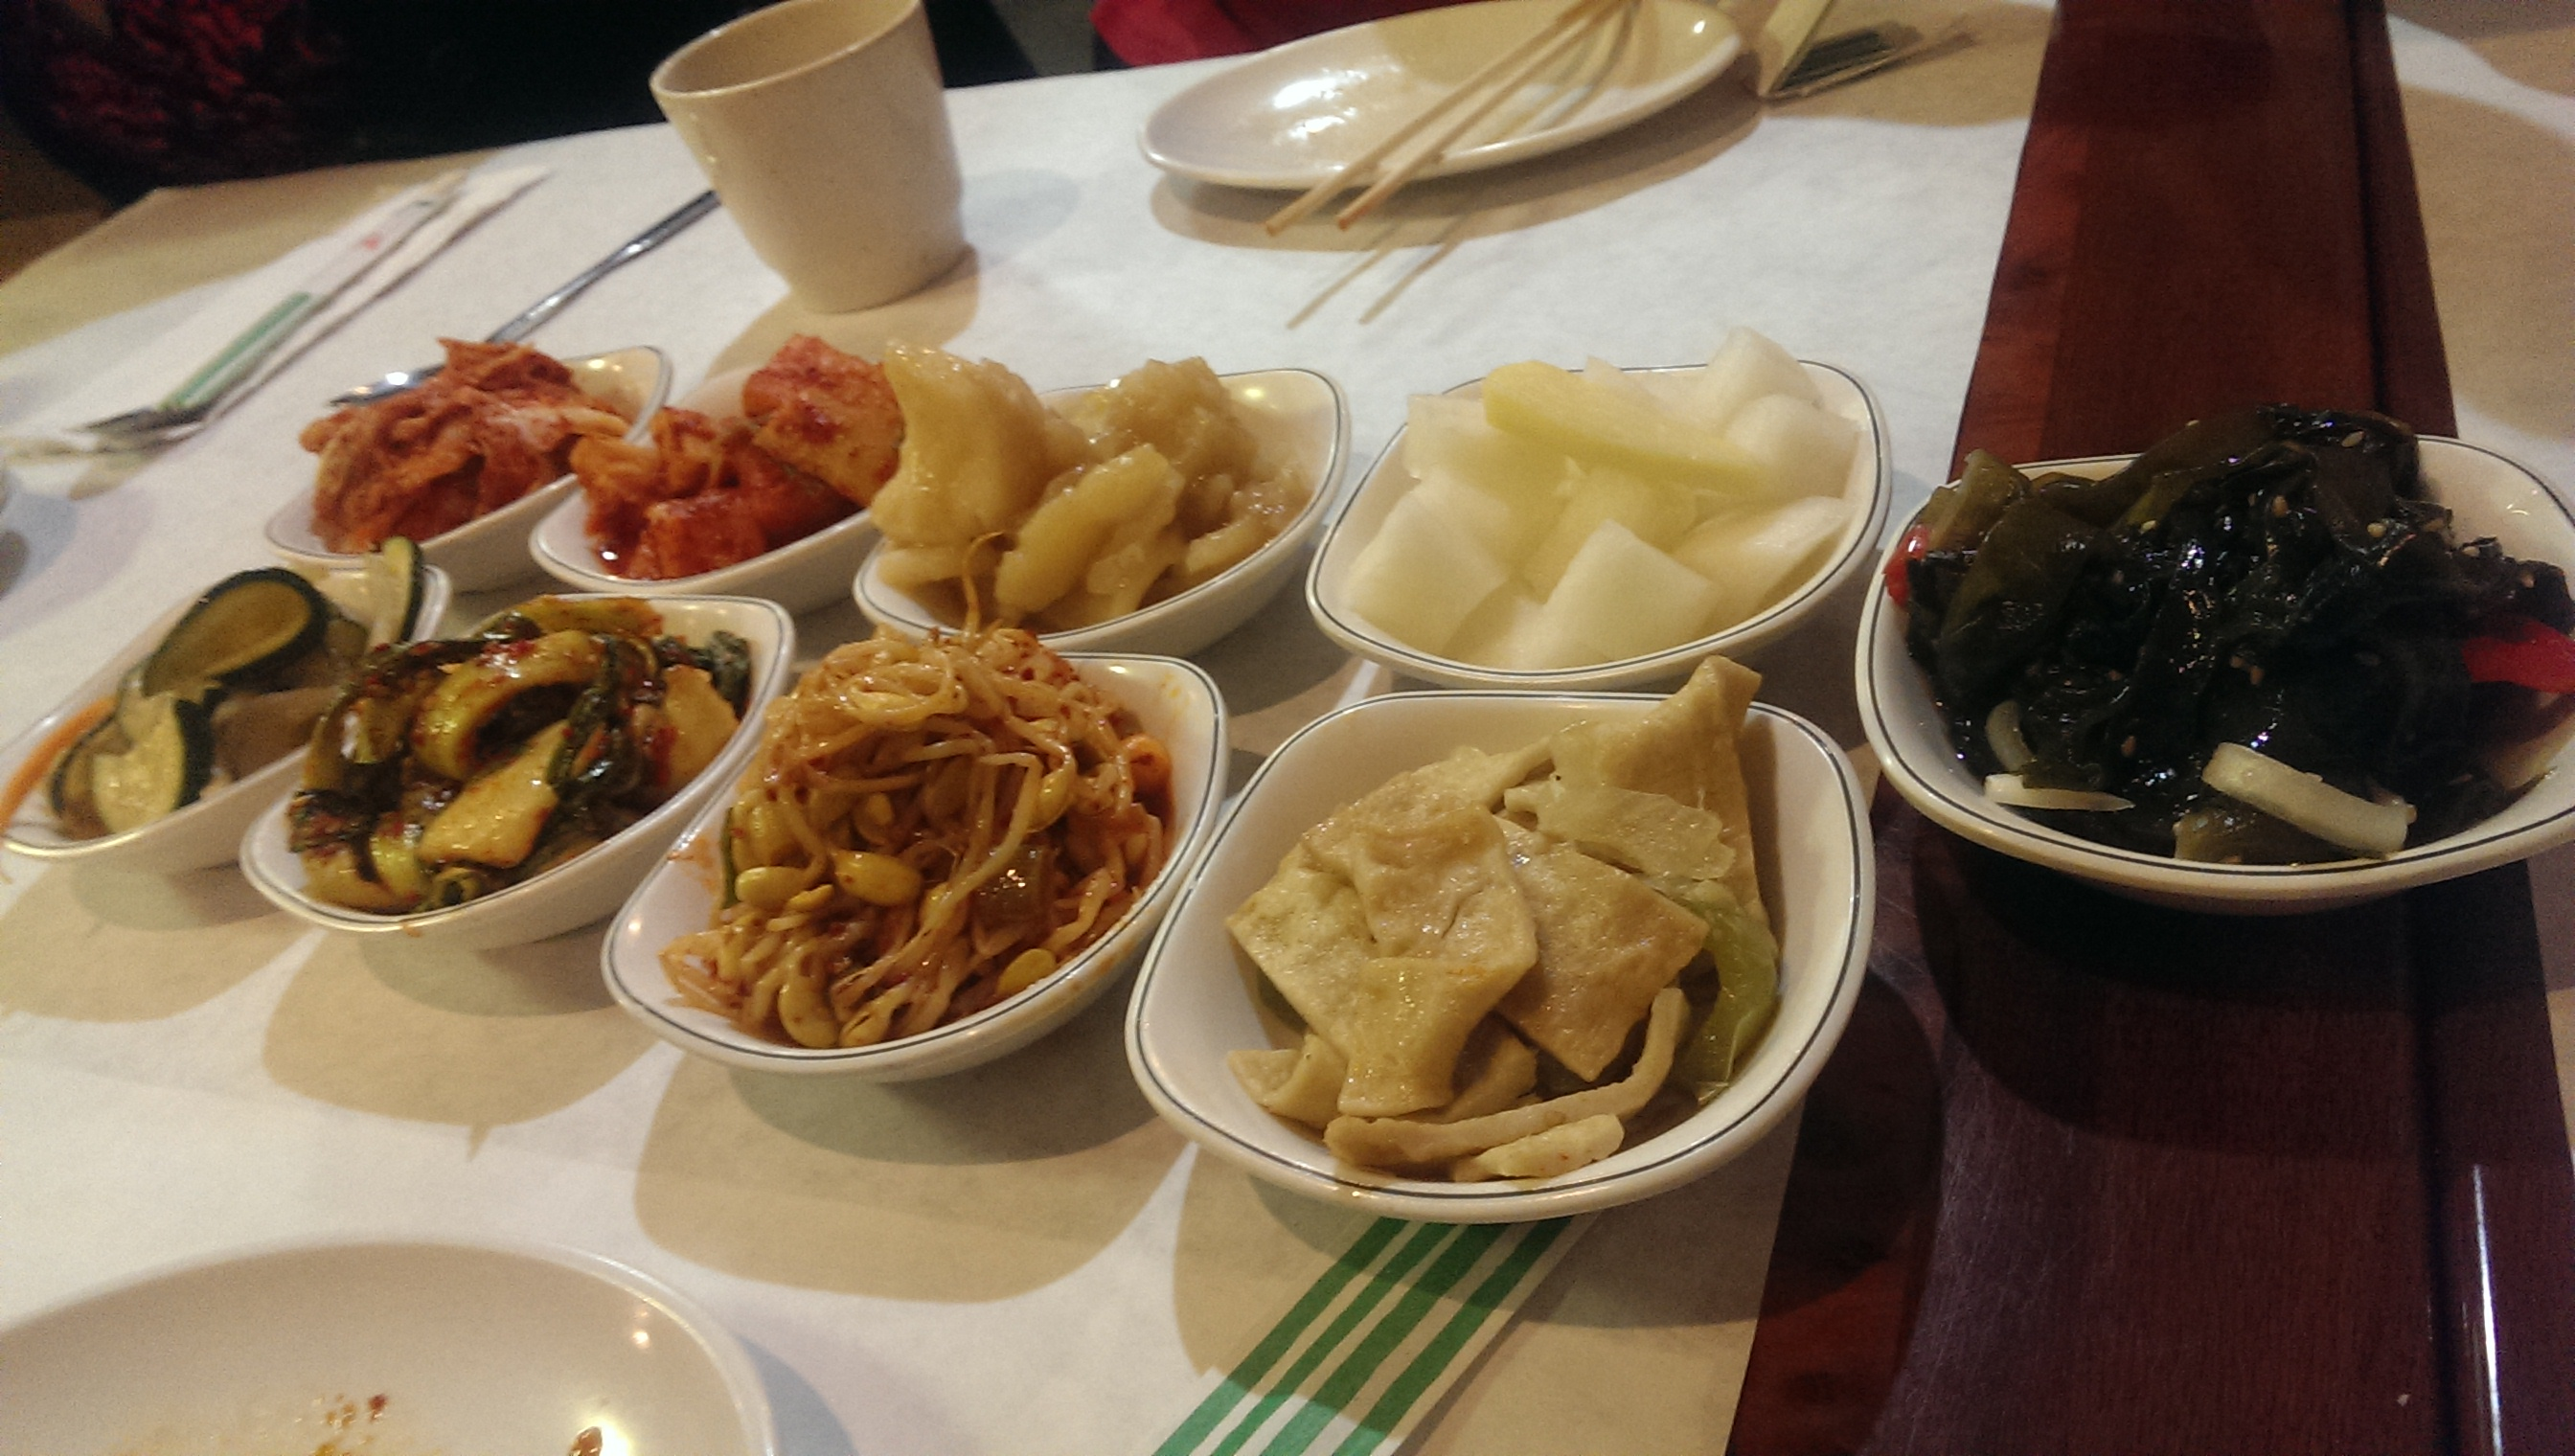 Seoul Garden in Parma | Cleveland Rocks, Cleveland Eats